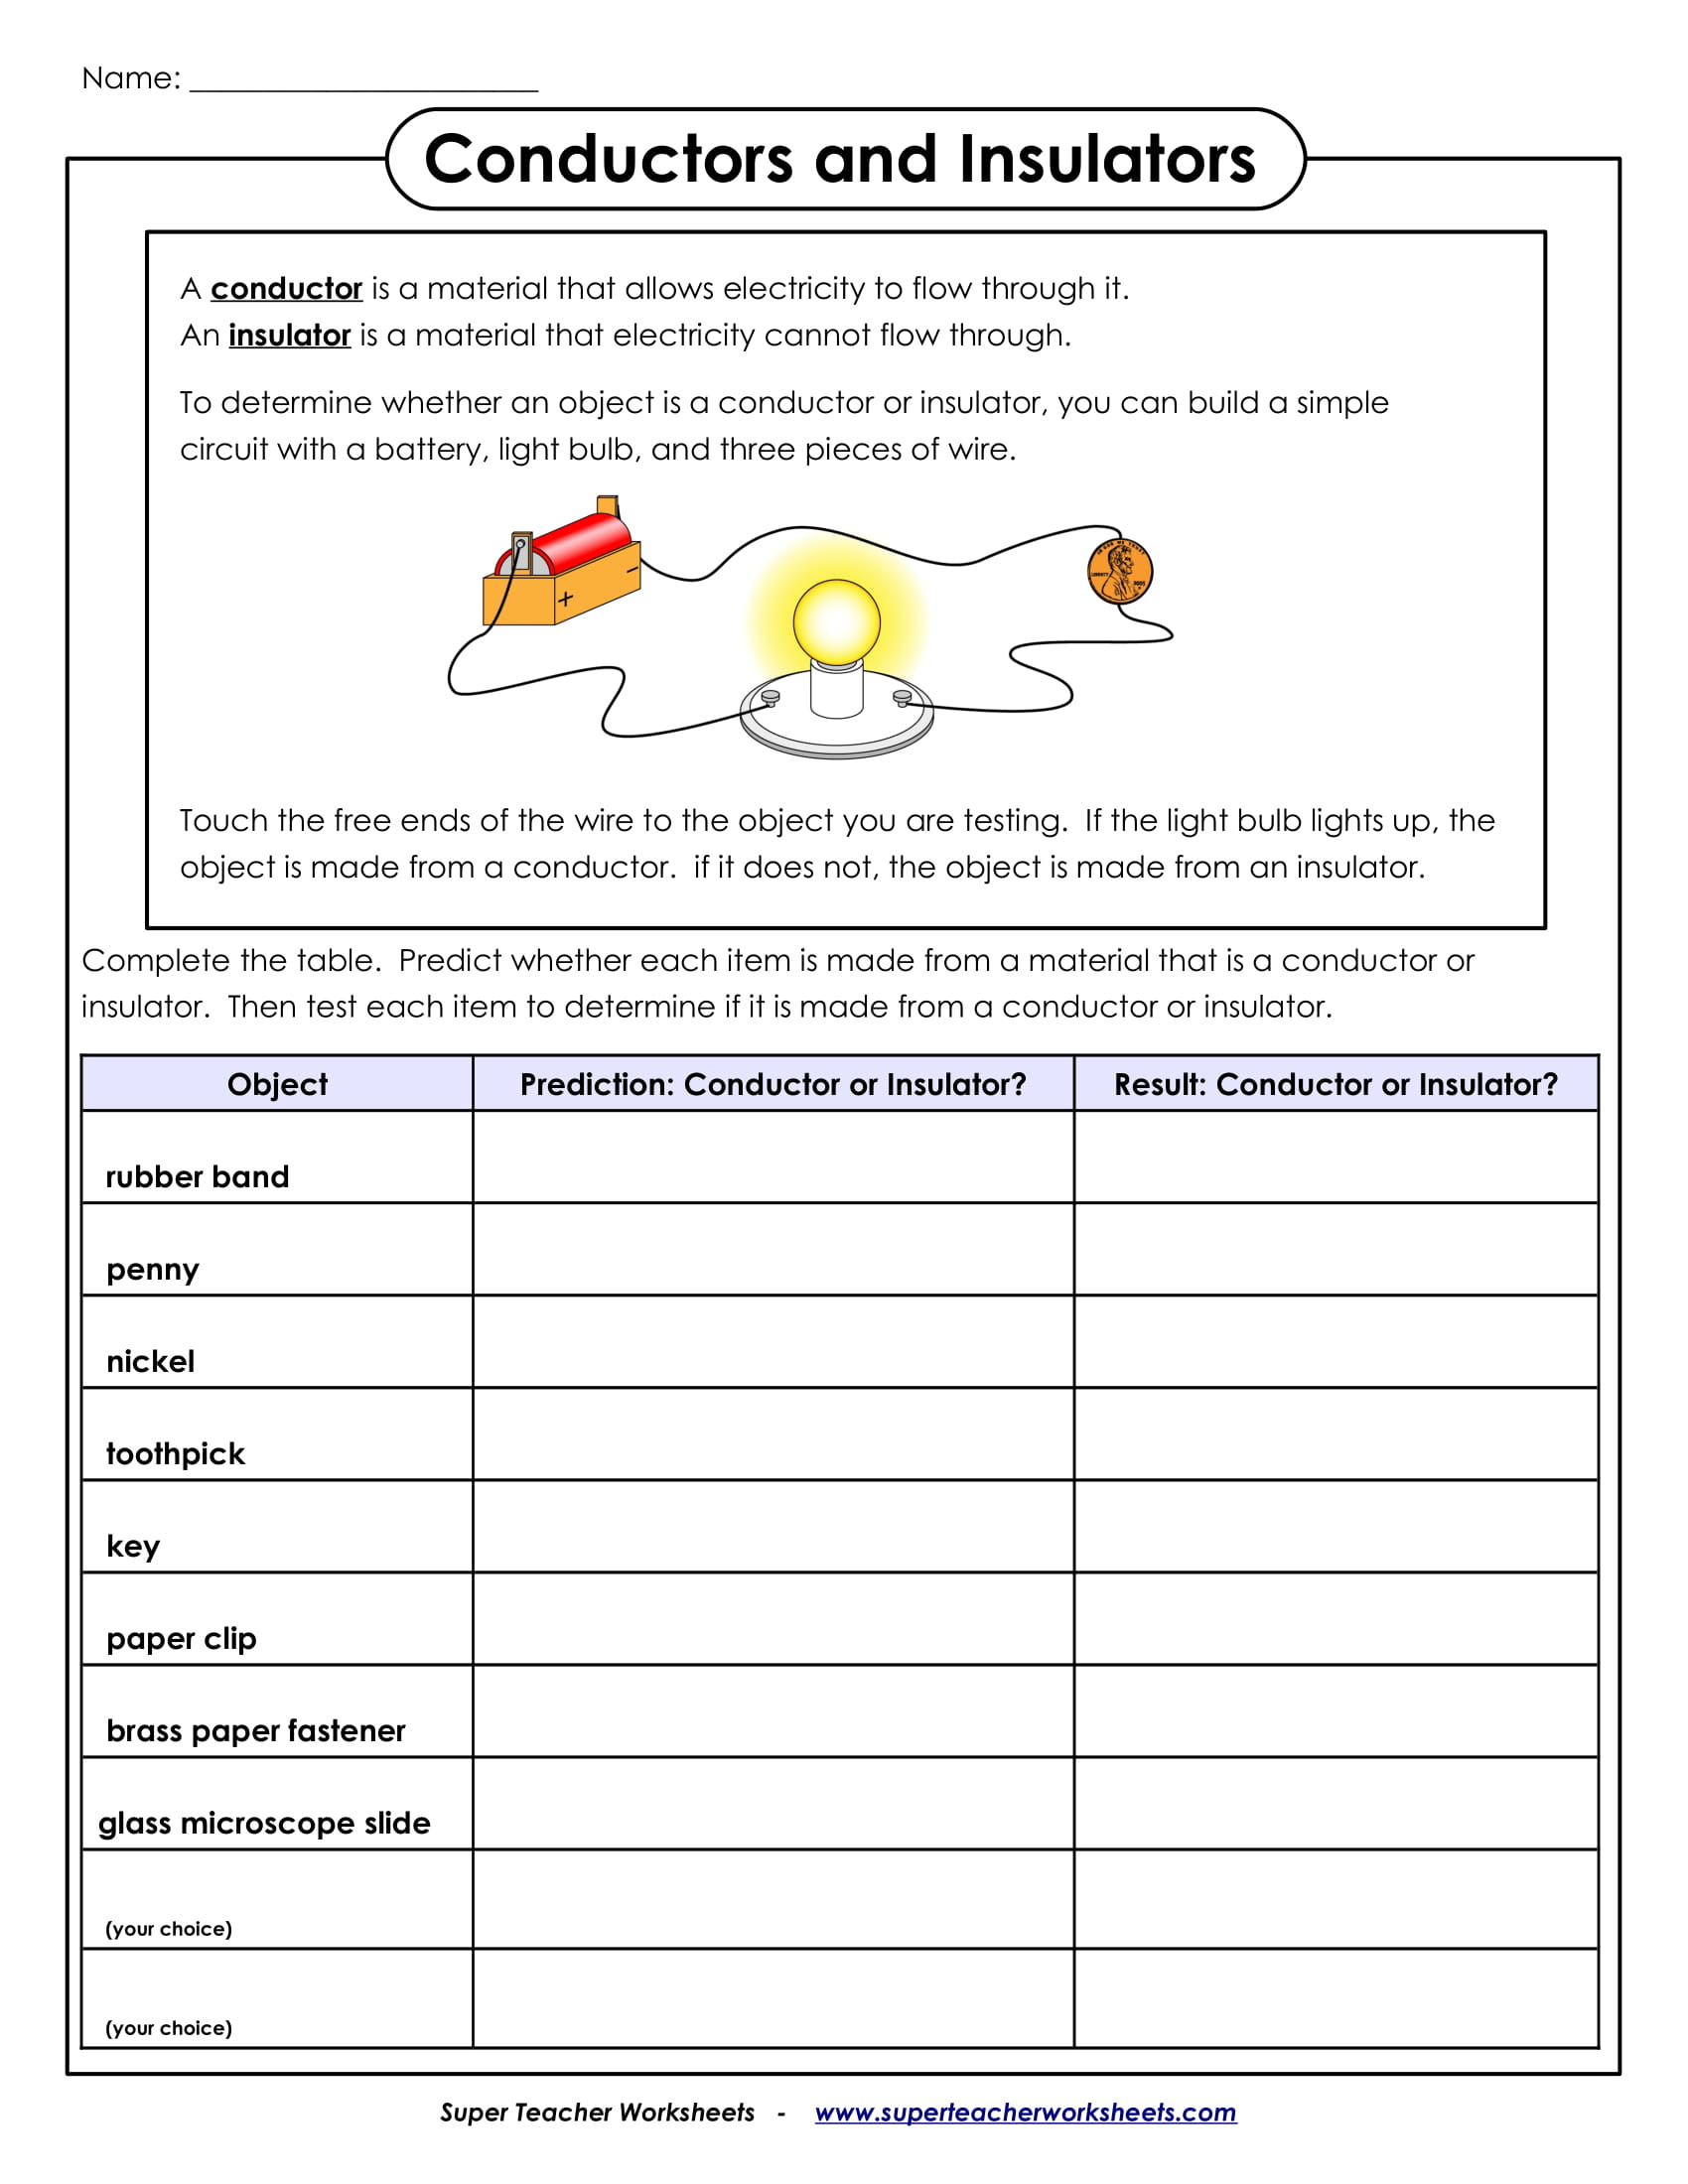 5 Science Worksheets For Students